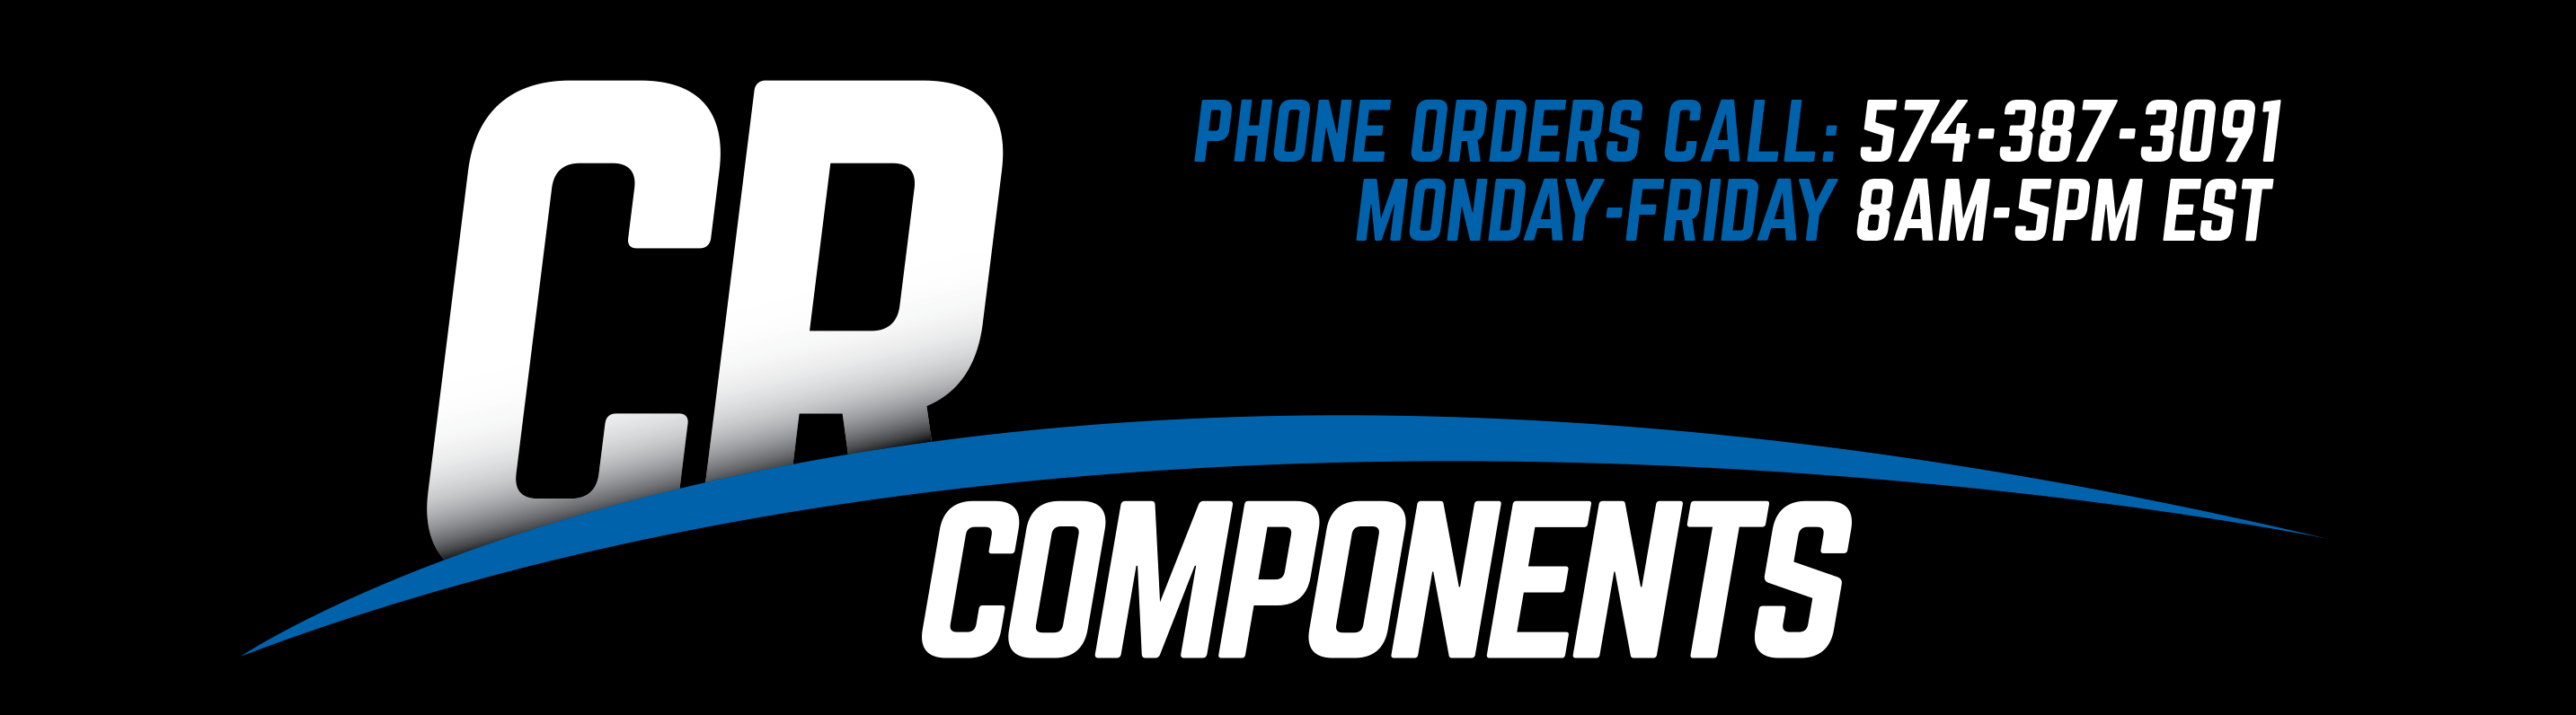 crcomponents Phone Orders Call: 574-387-3091